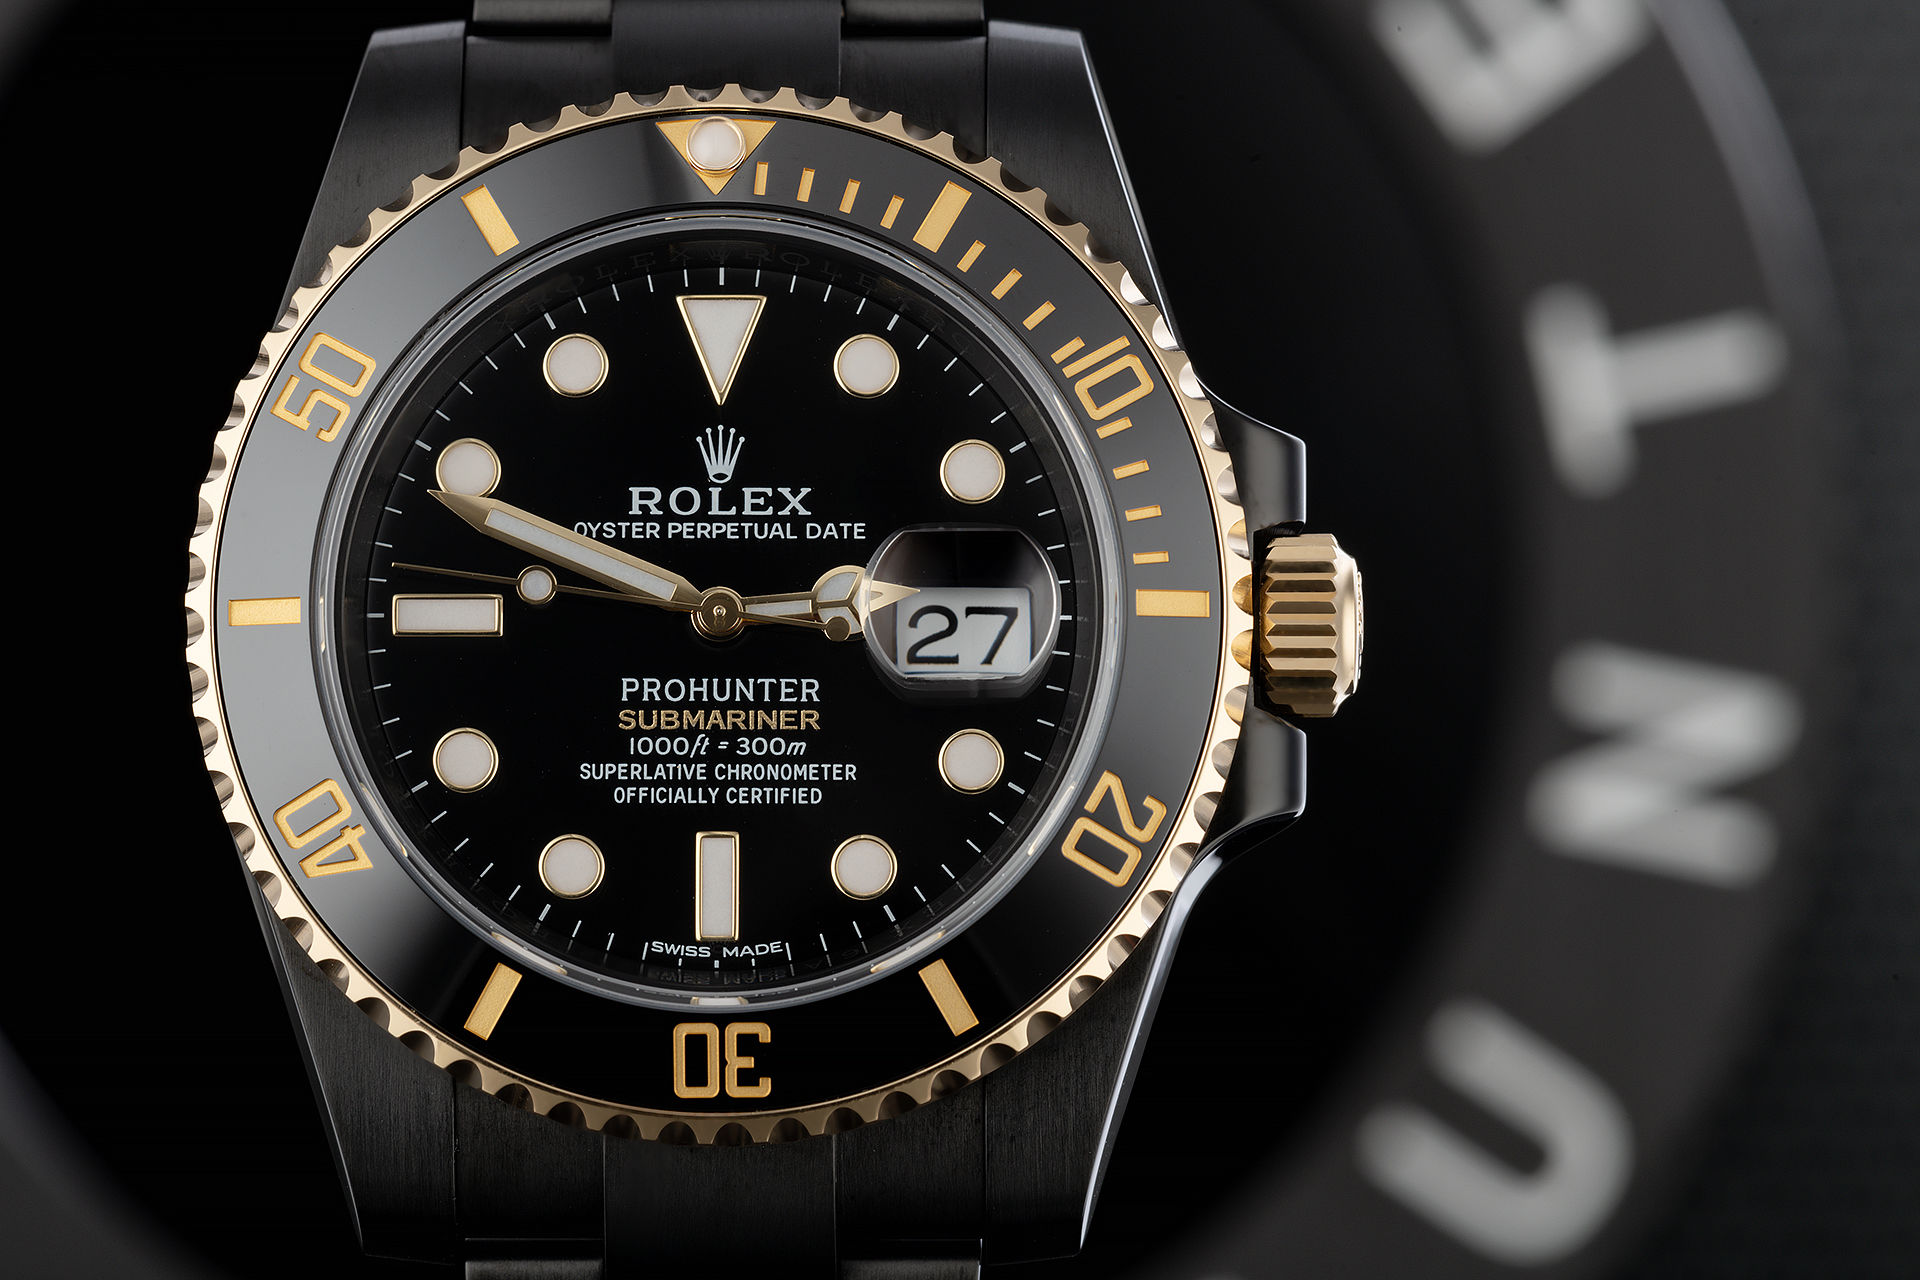 ref 116613LN | Limited Edition 'One of 100' | Pro Hunter Submariner Safari